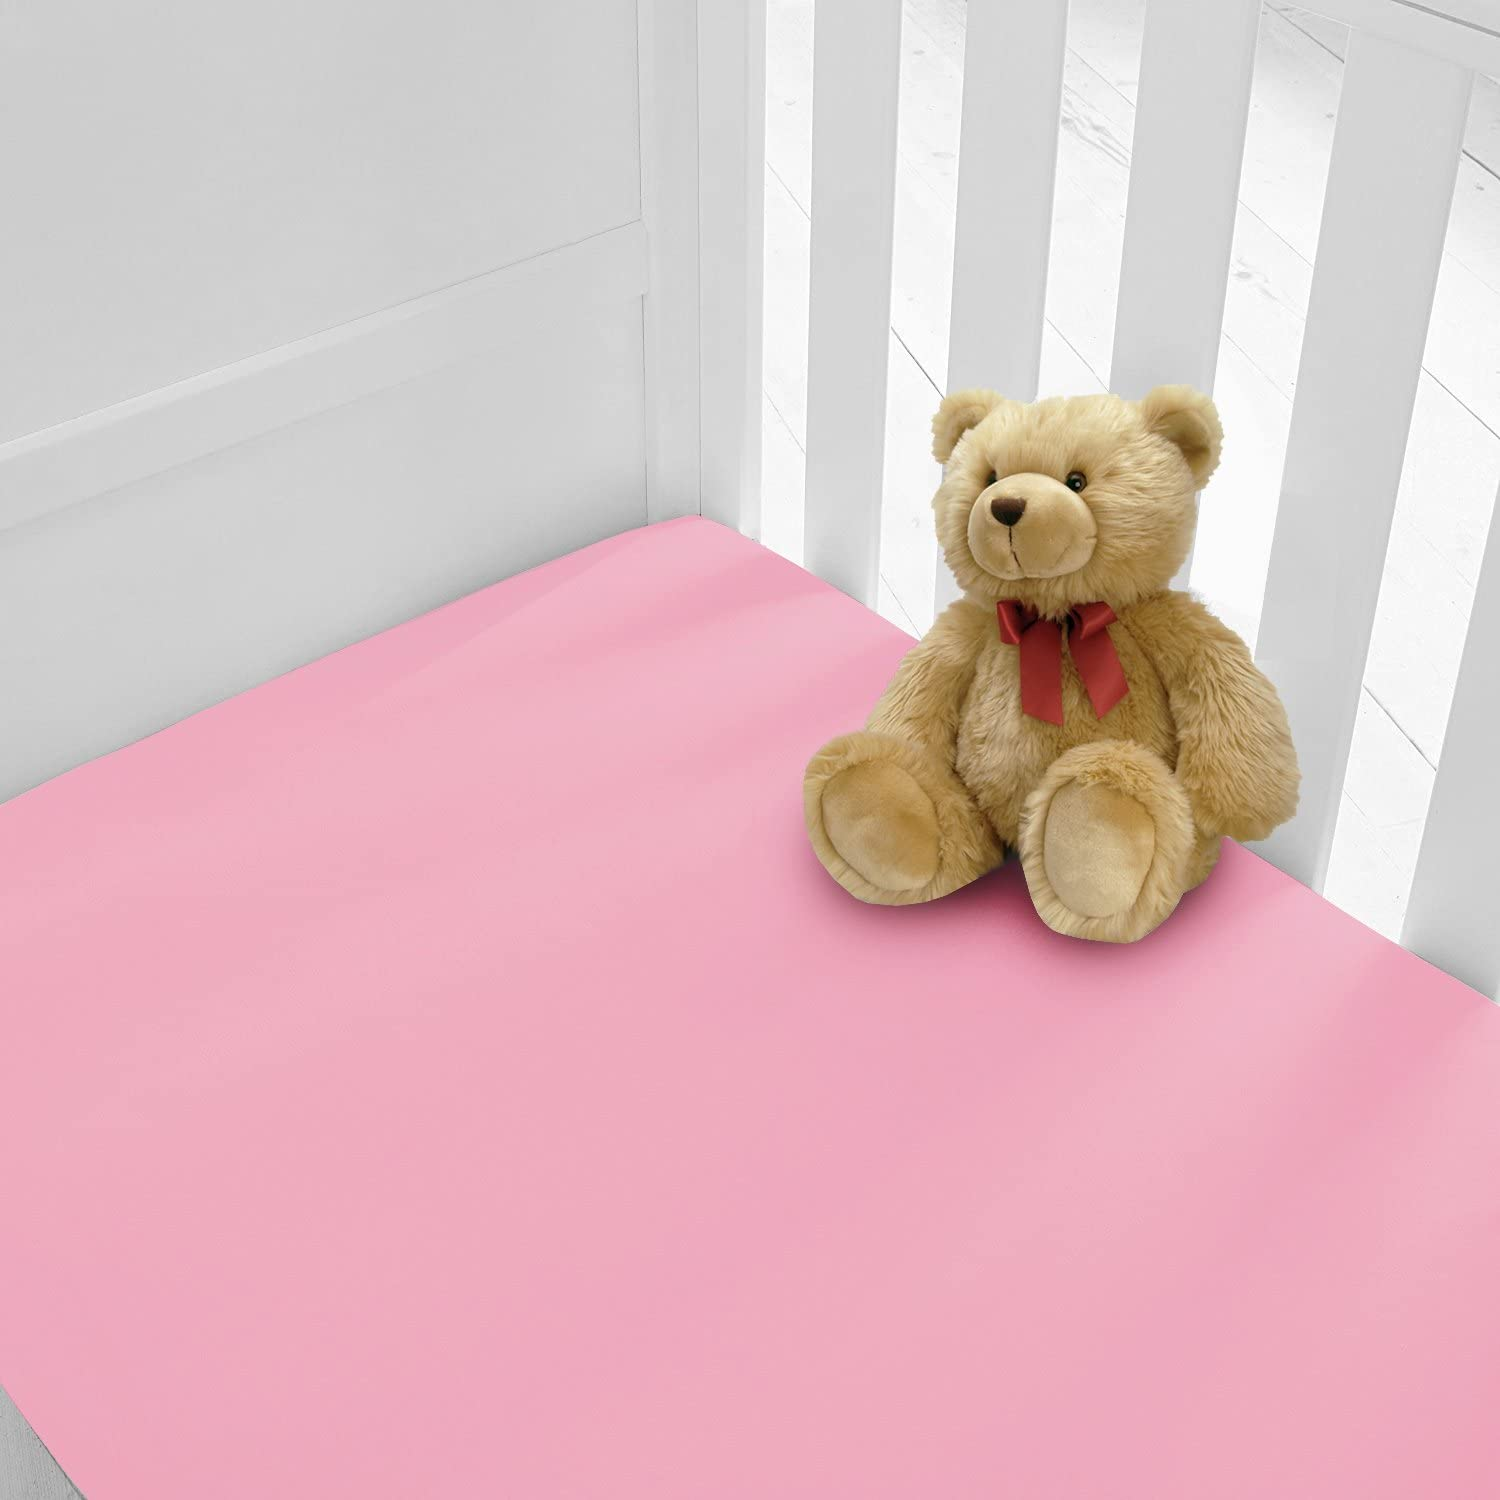 Luxury Percale Cot Bed Fitted Sheets Available in 12 Colours Cotbed, Chocolate Pack of 2 Two